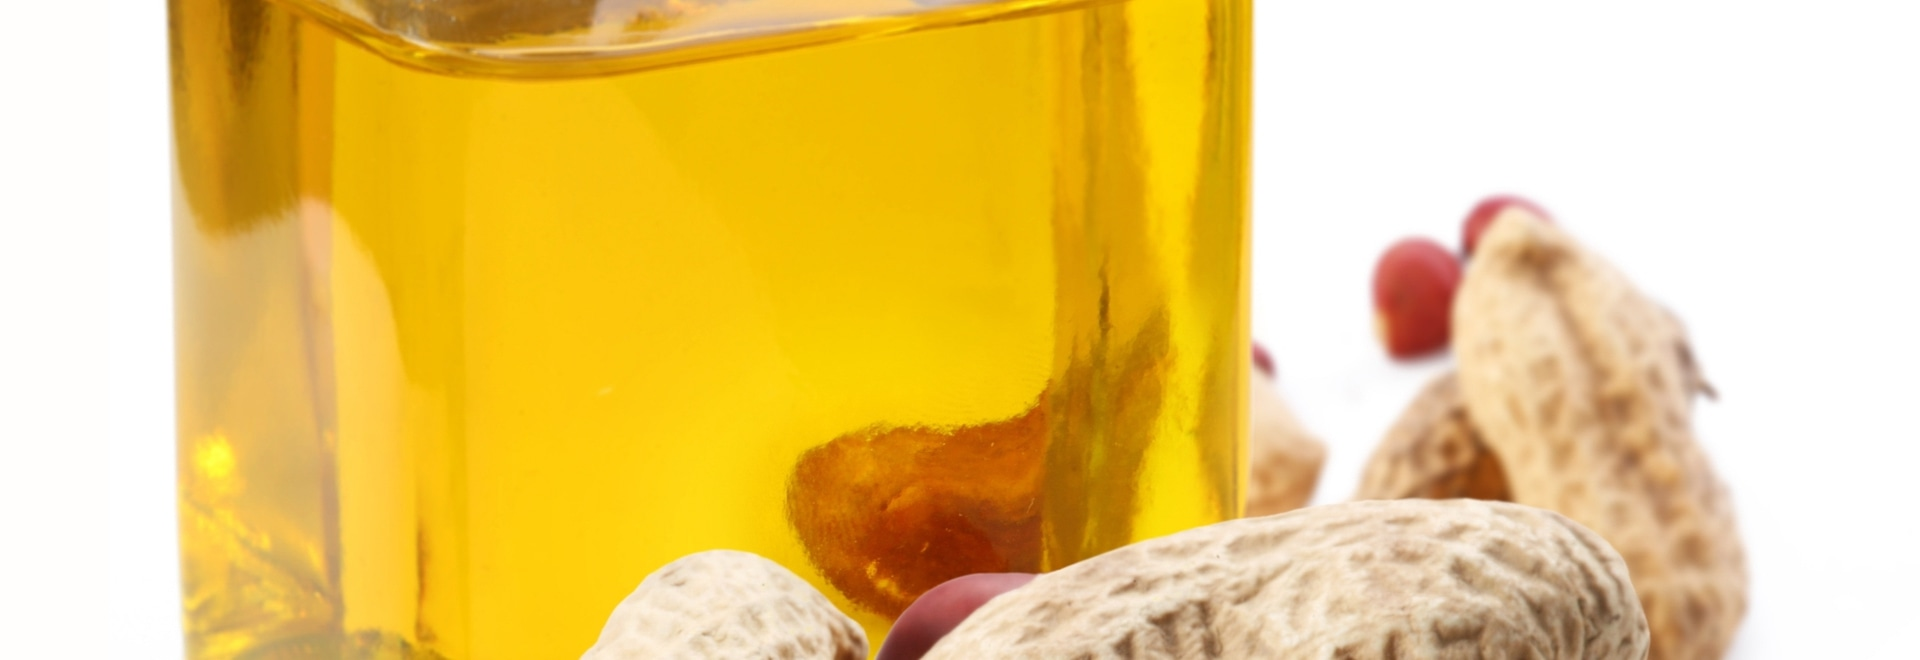 Removal of Solvents from Oil and Fat Samples